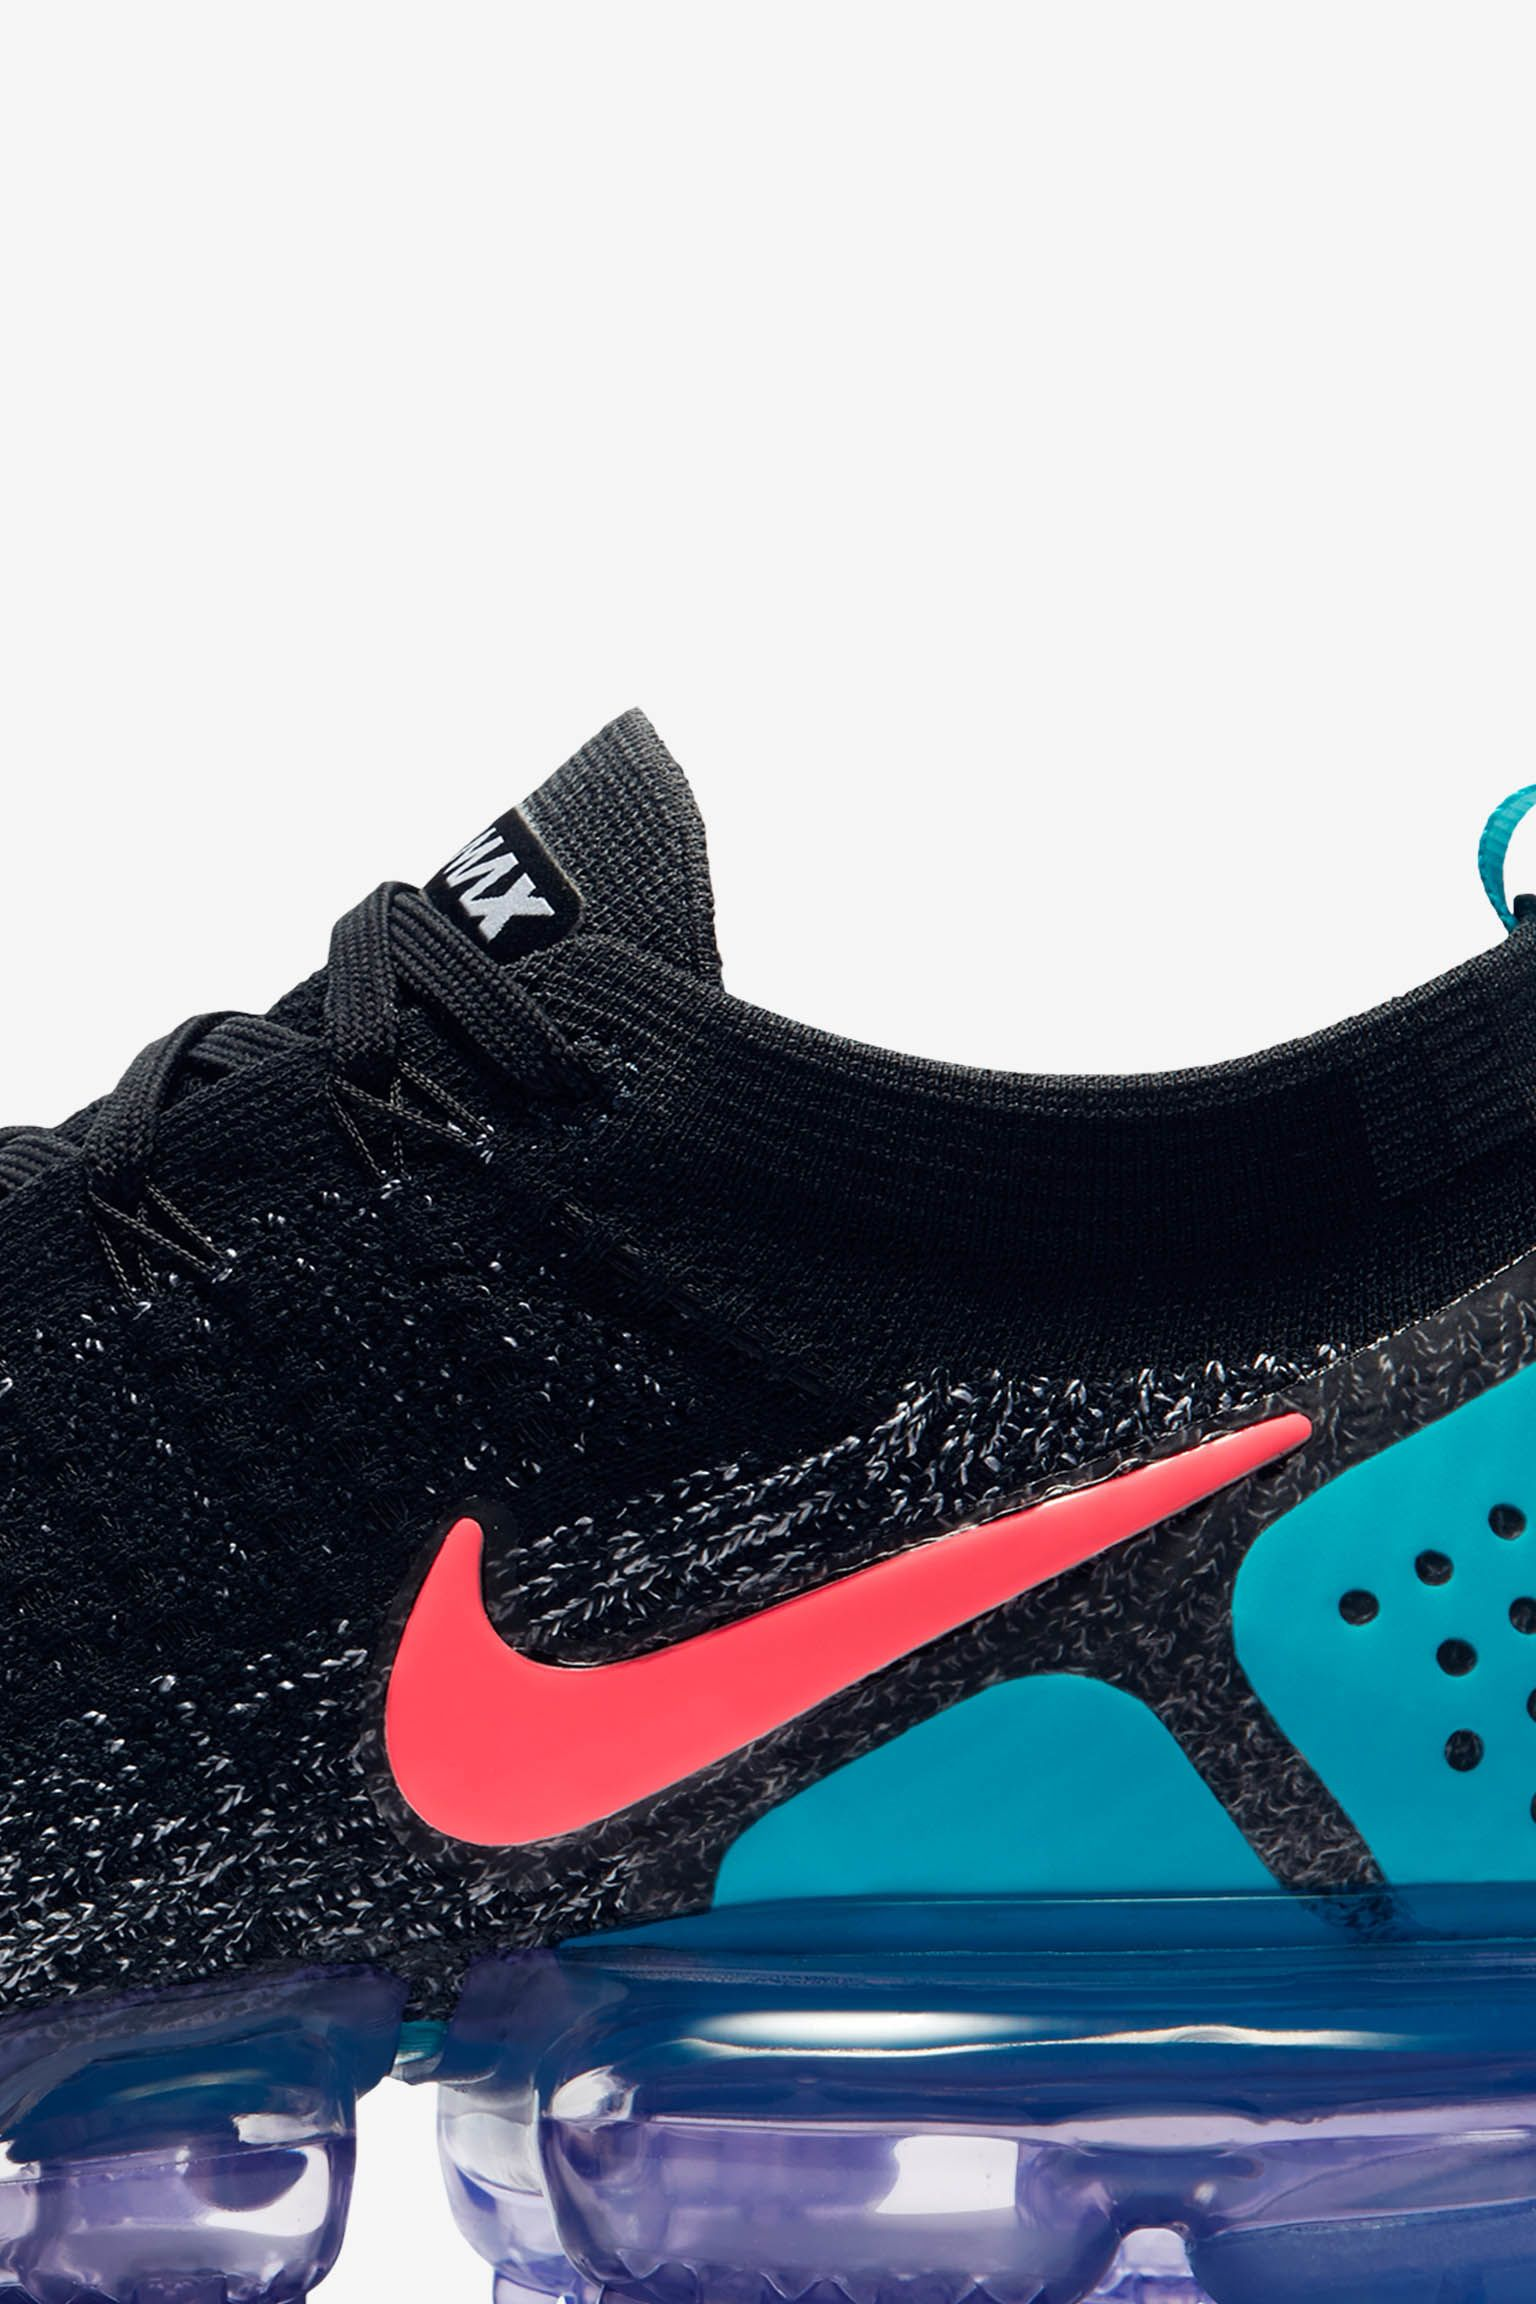 Nike Air Vapormax Flyknit 2 'Black & Hot Punch' Release Date